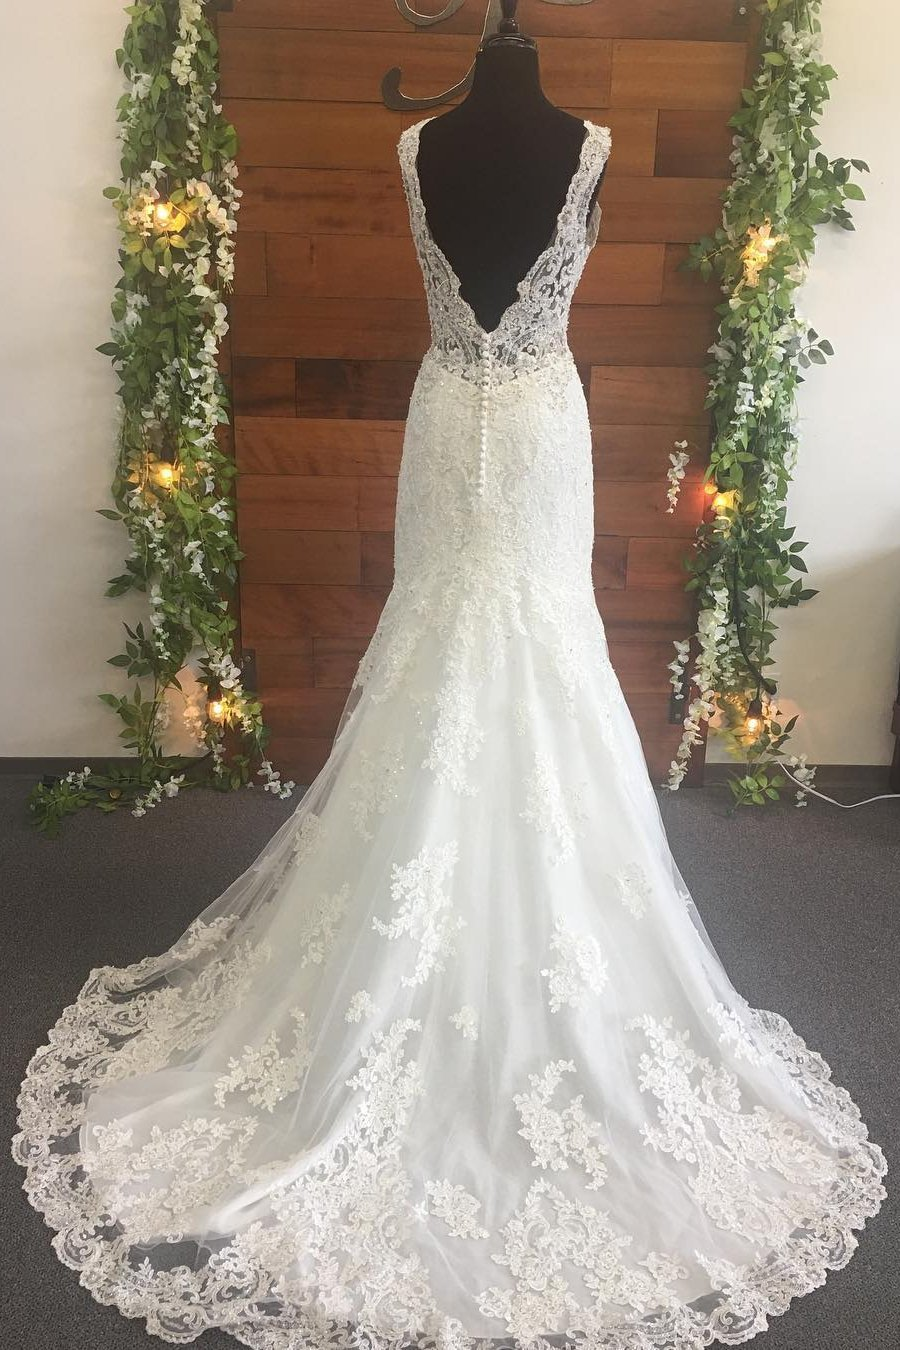 2020 Mermaid Lace V Neck Backless Long Ivory Wedding Dresses